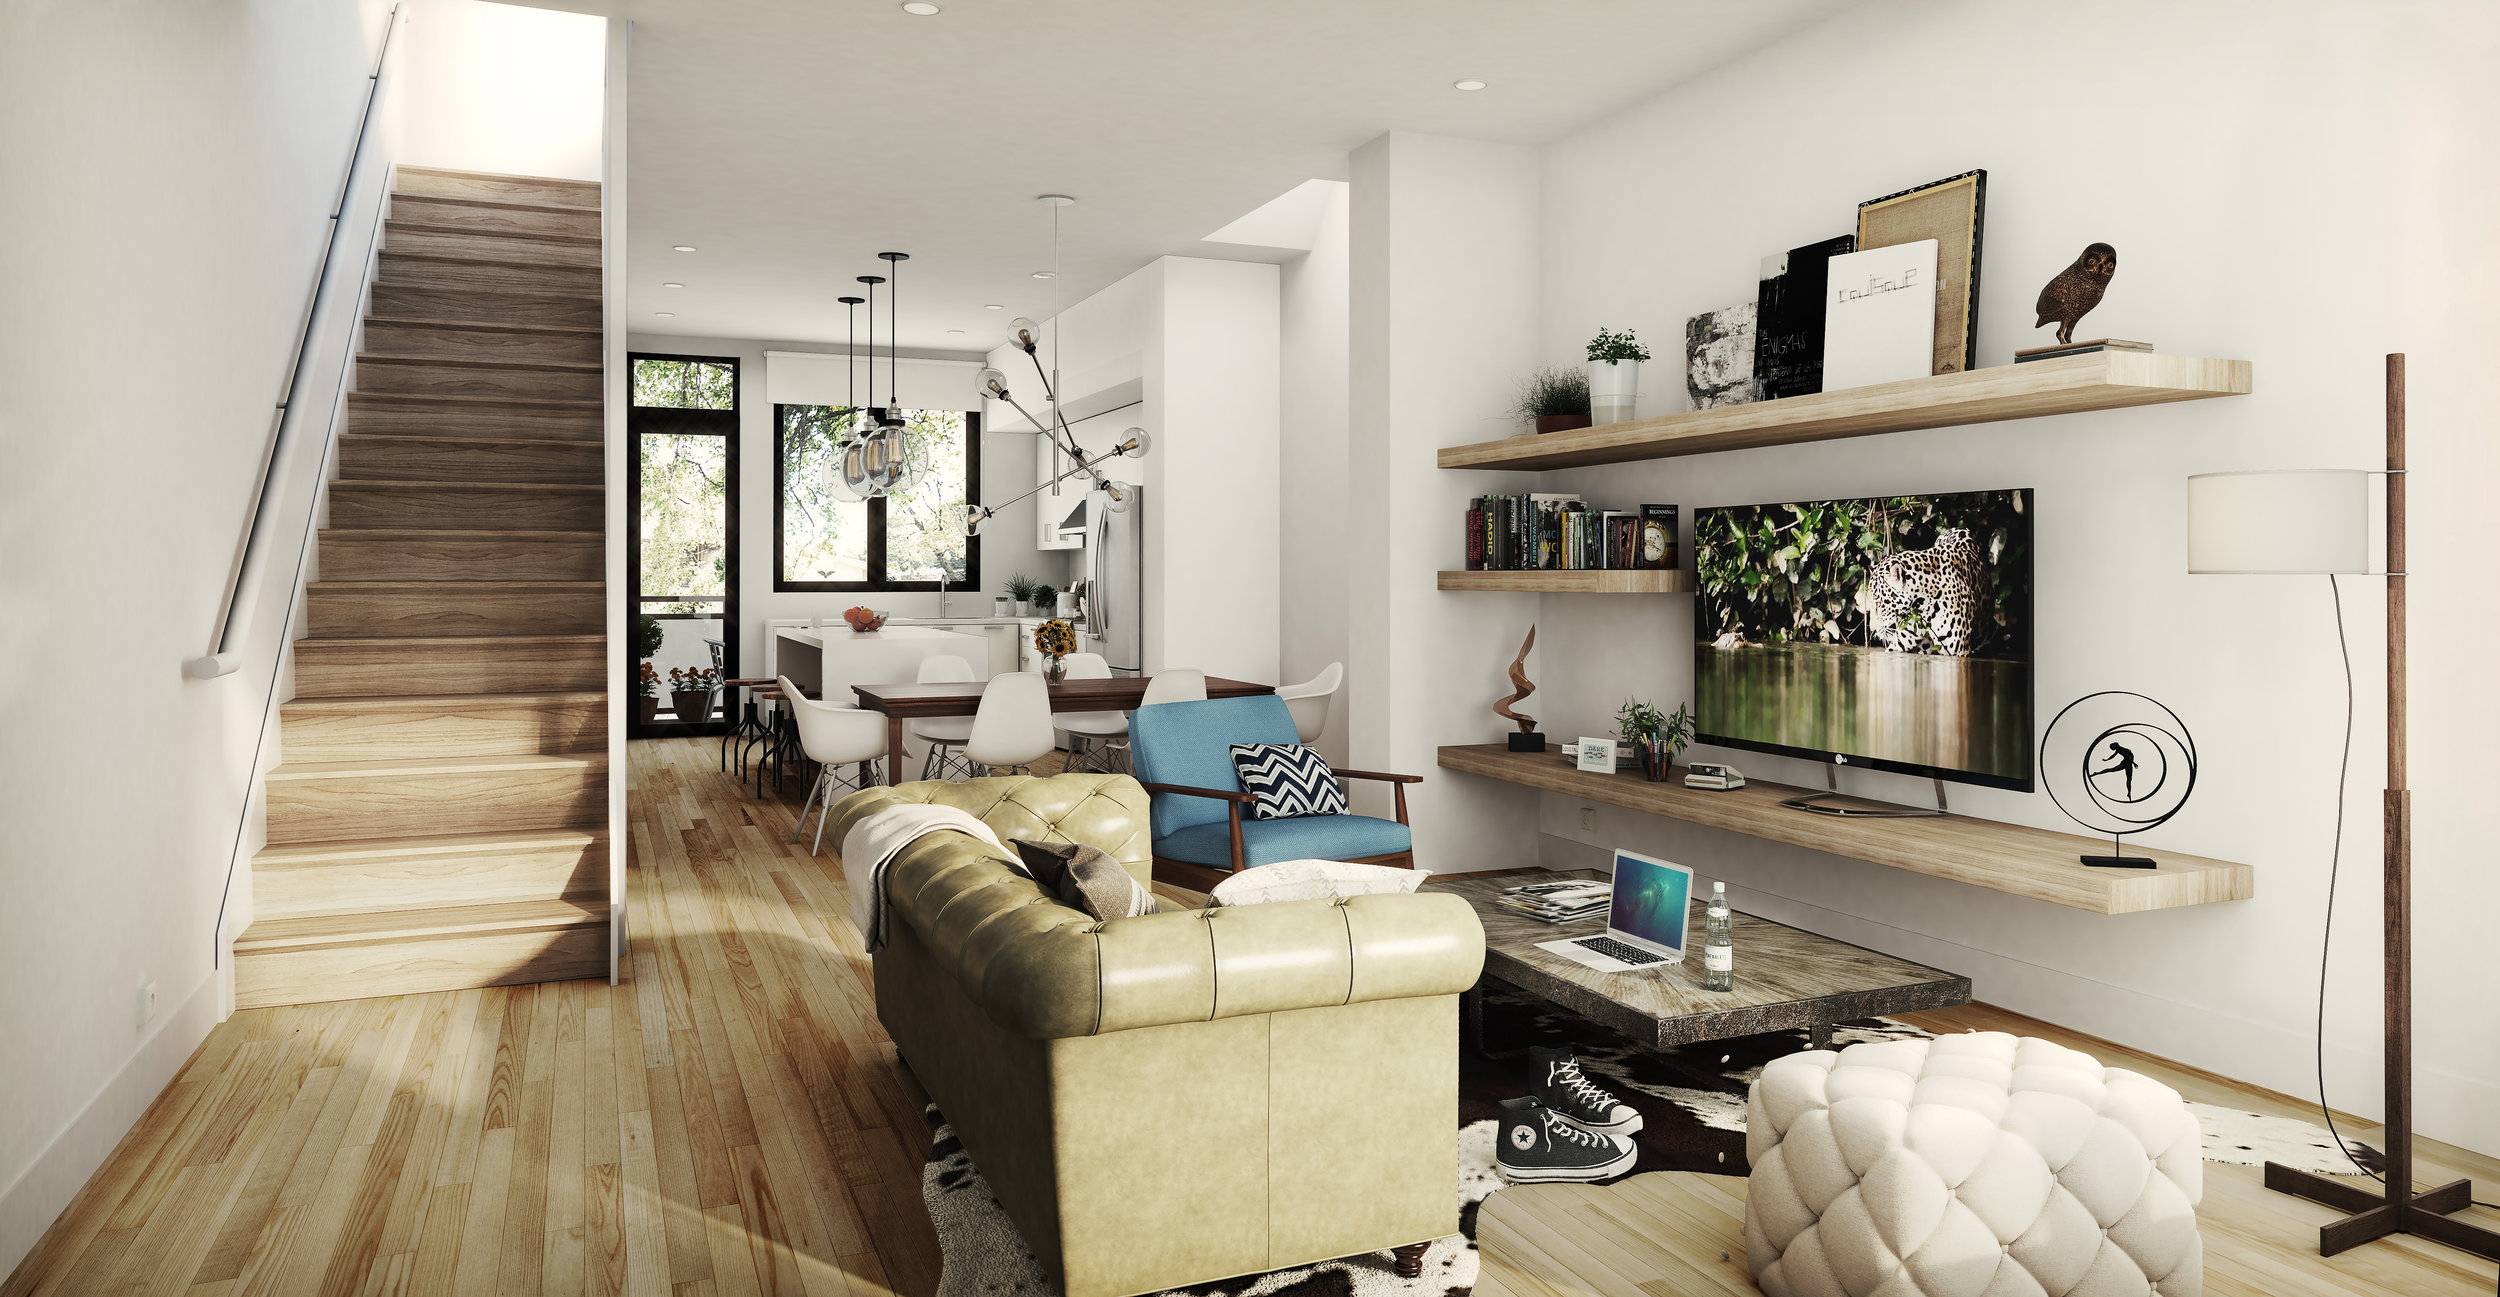 Interior Unit Living Room (Actual Delivered Residence May Differ from Rendering)